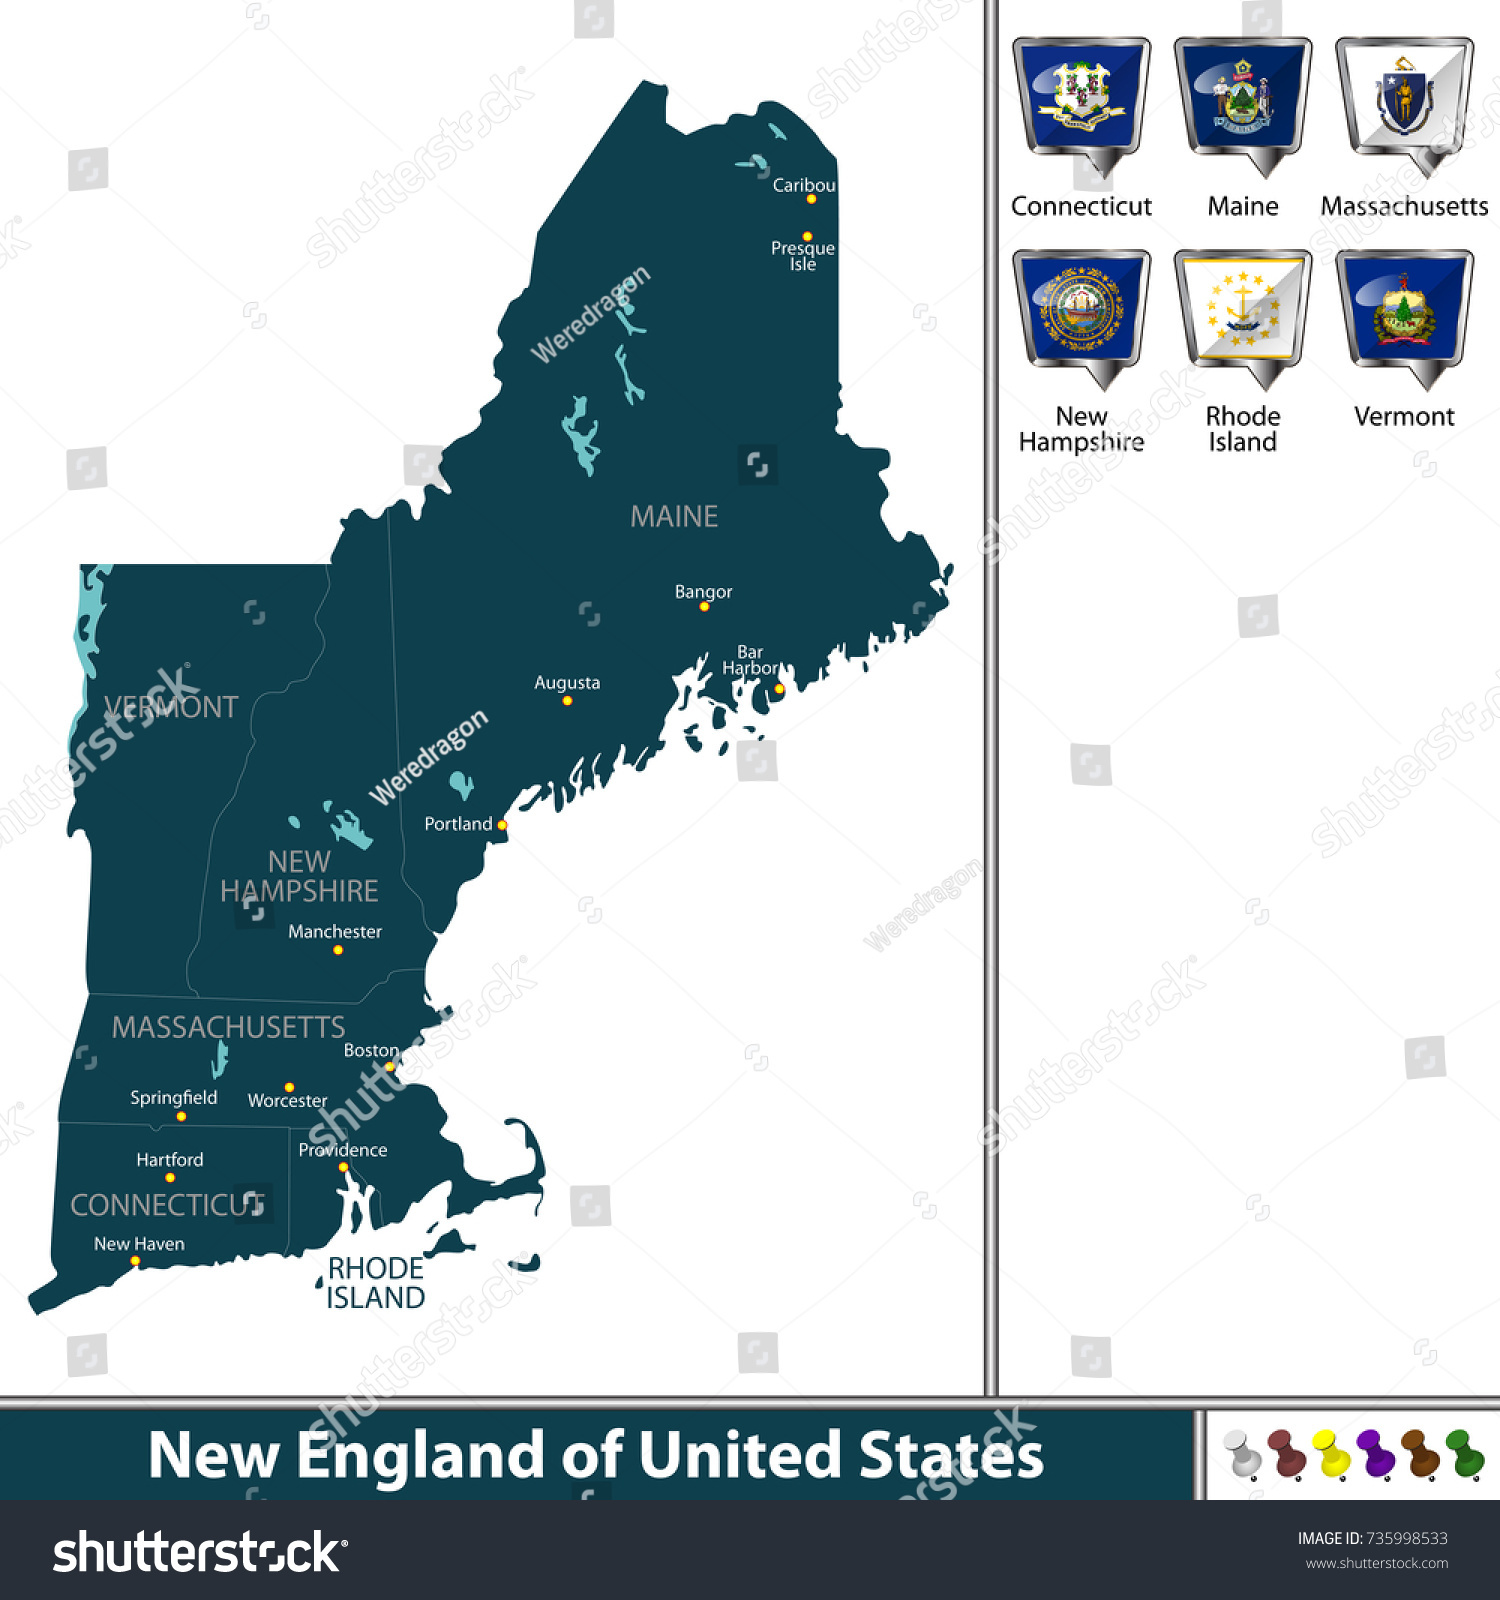 Vector Set New England United States Stock Vector (Royalty Free ...